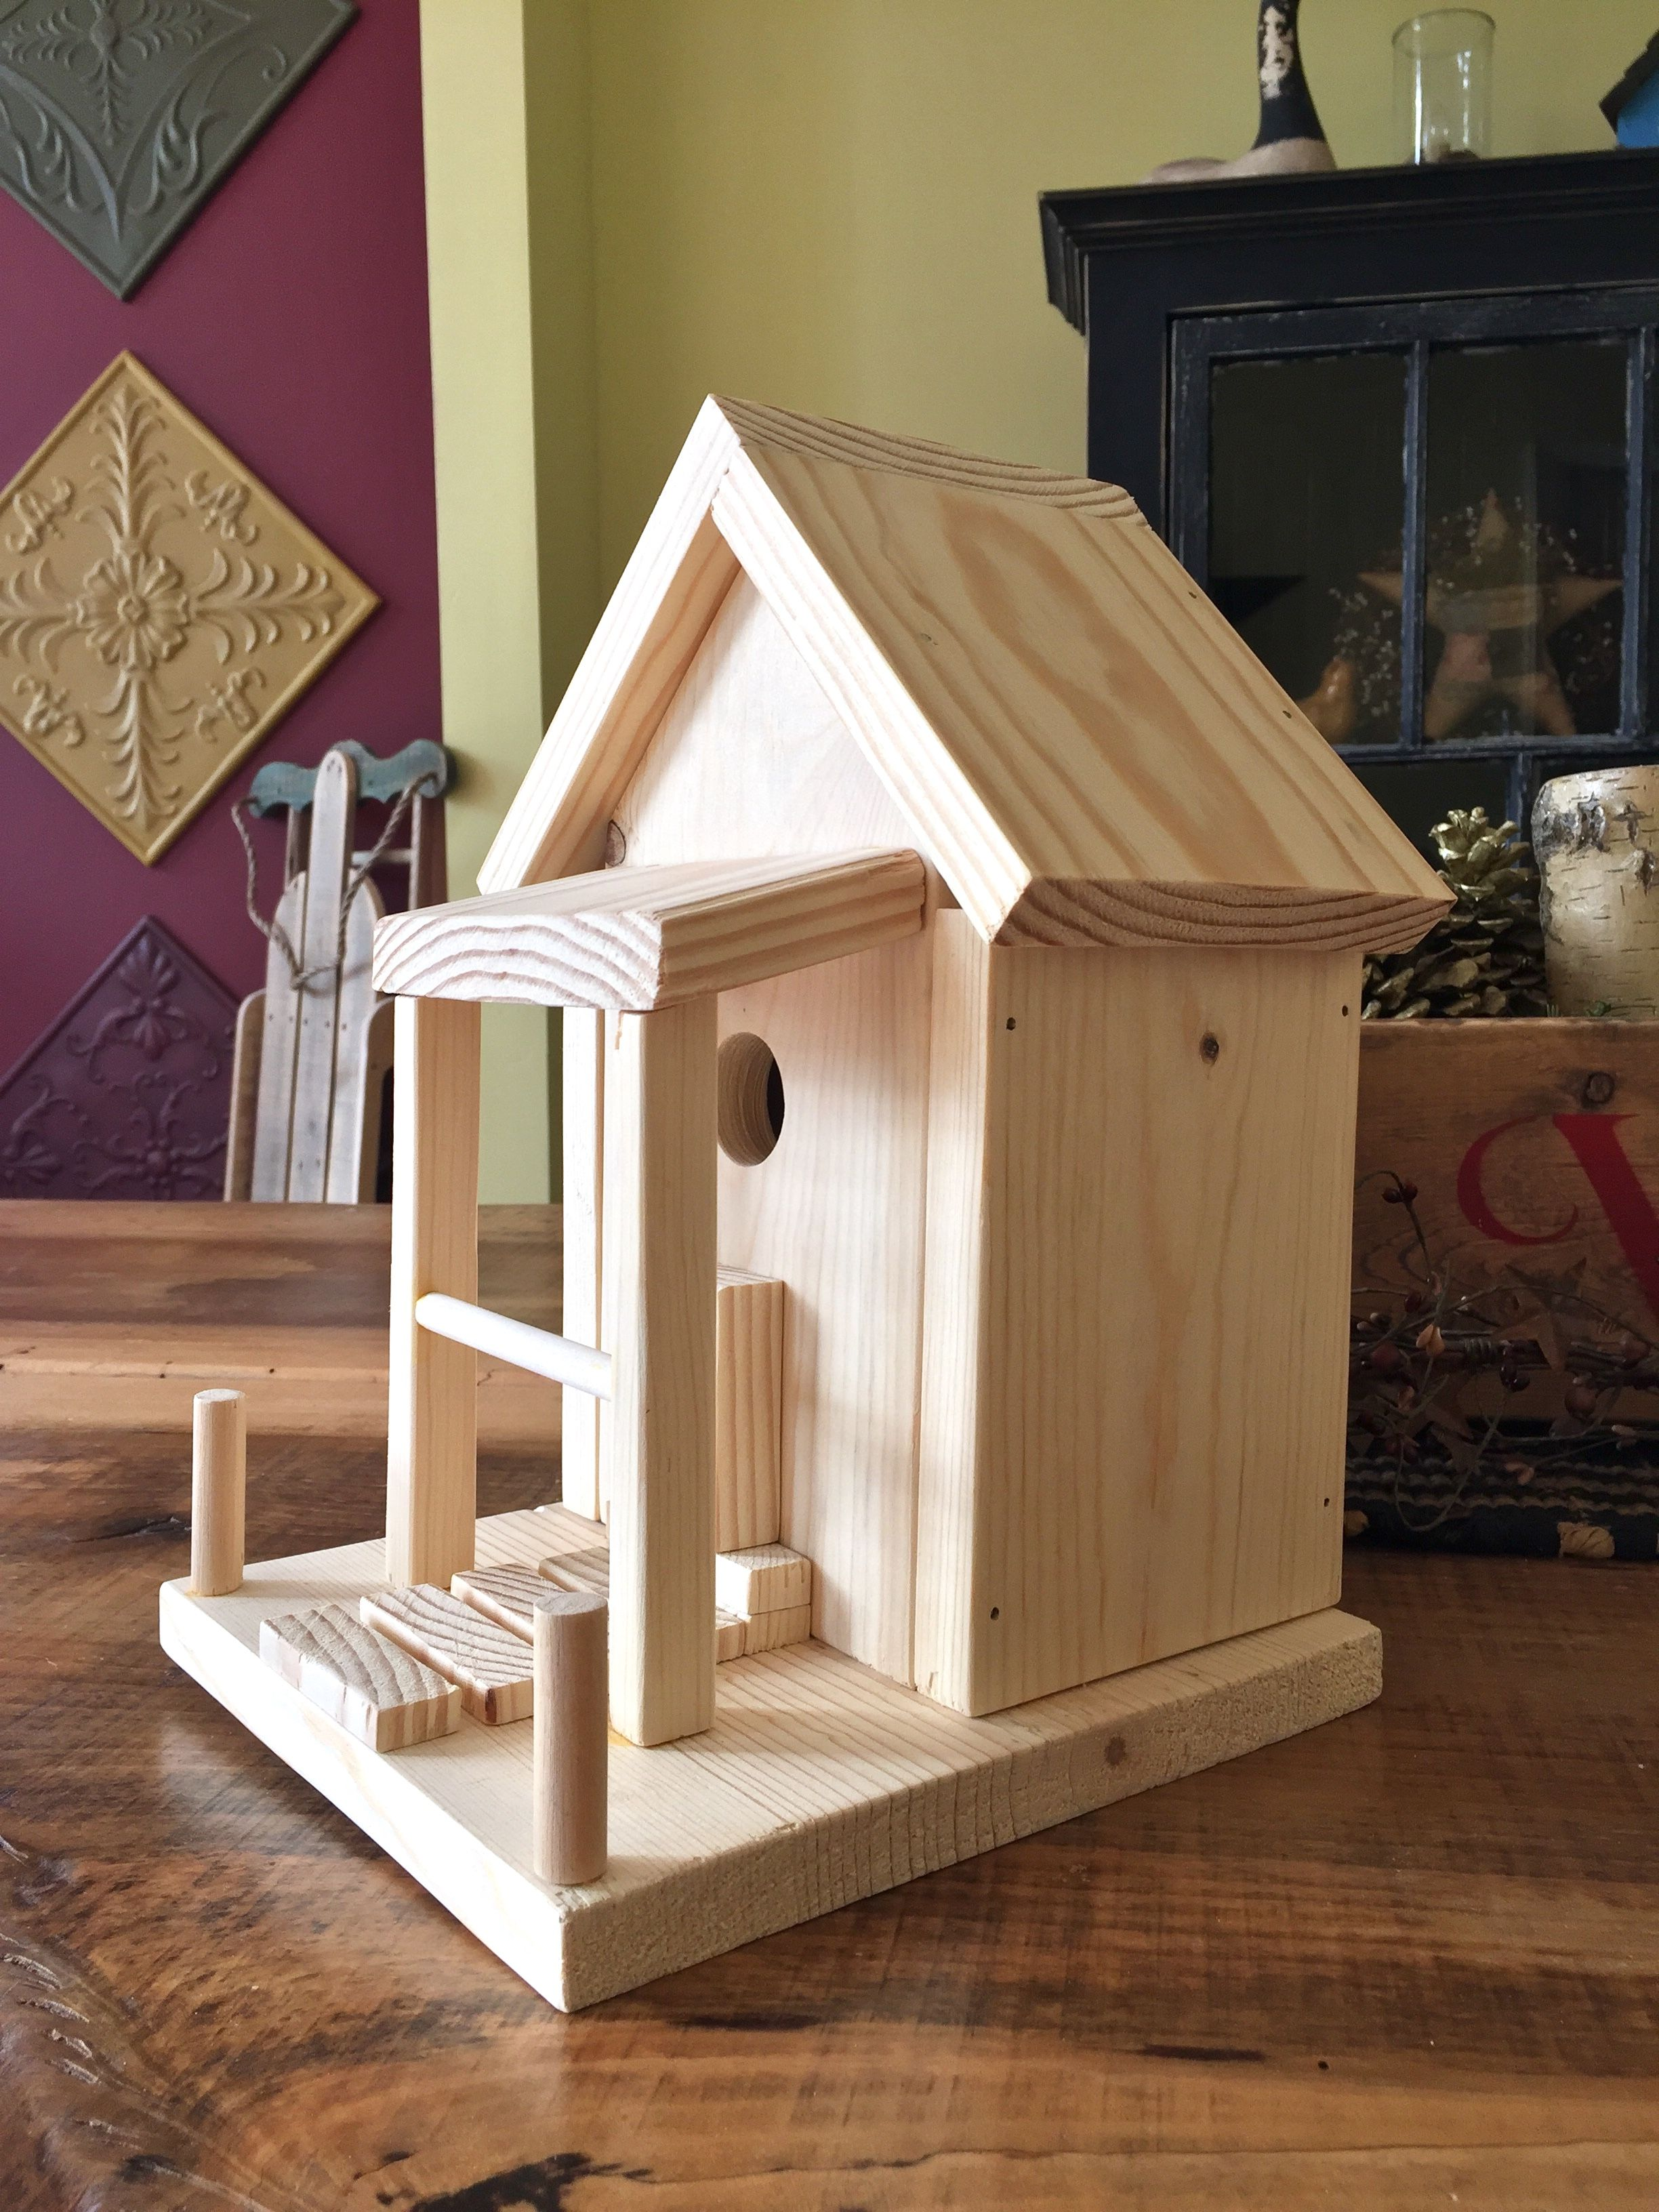 Vogelhaus Bausatz Pine Boathouse Birdhouse The Skaarsgard Collection Nashville